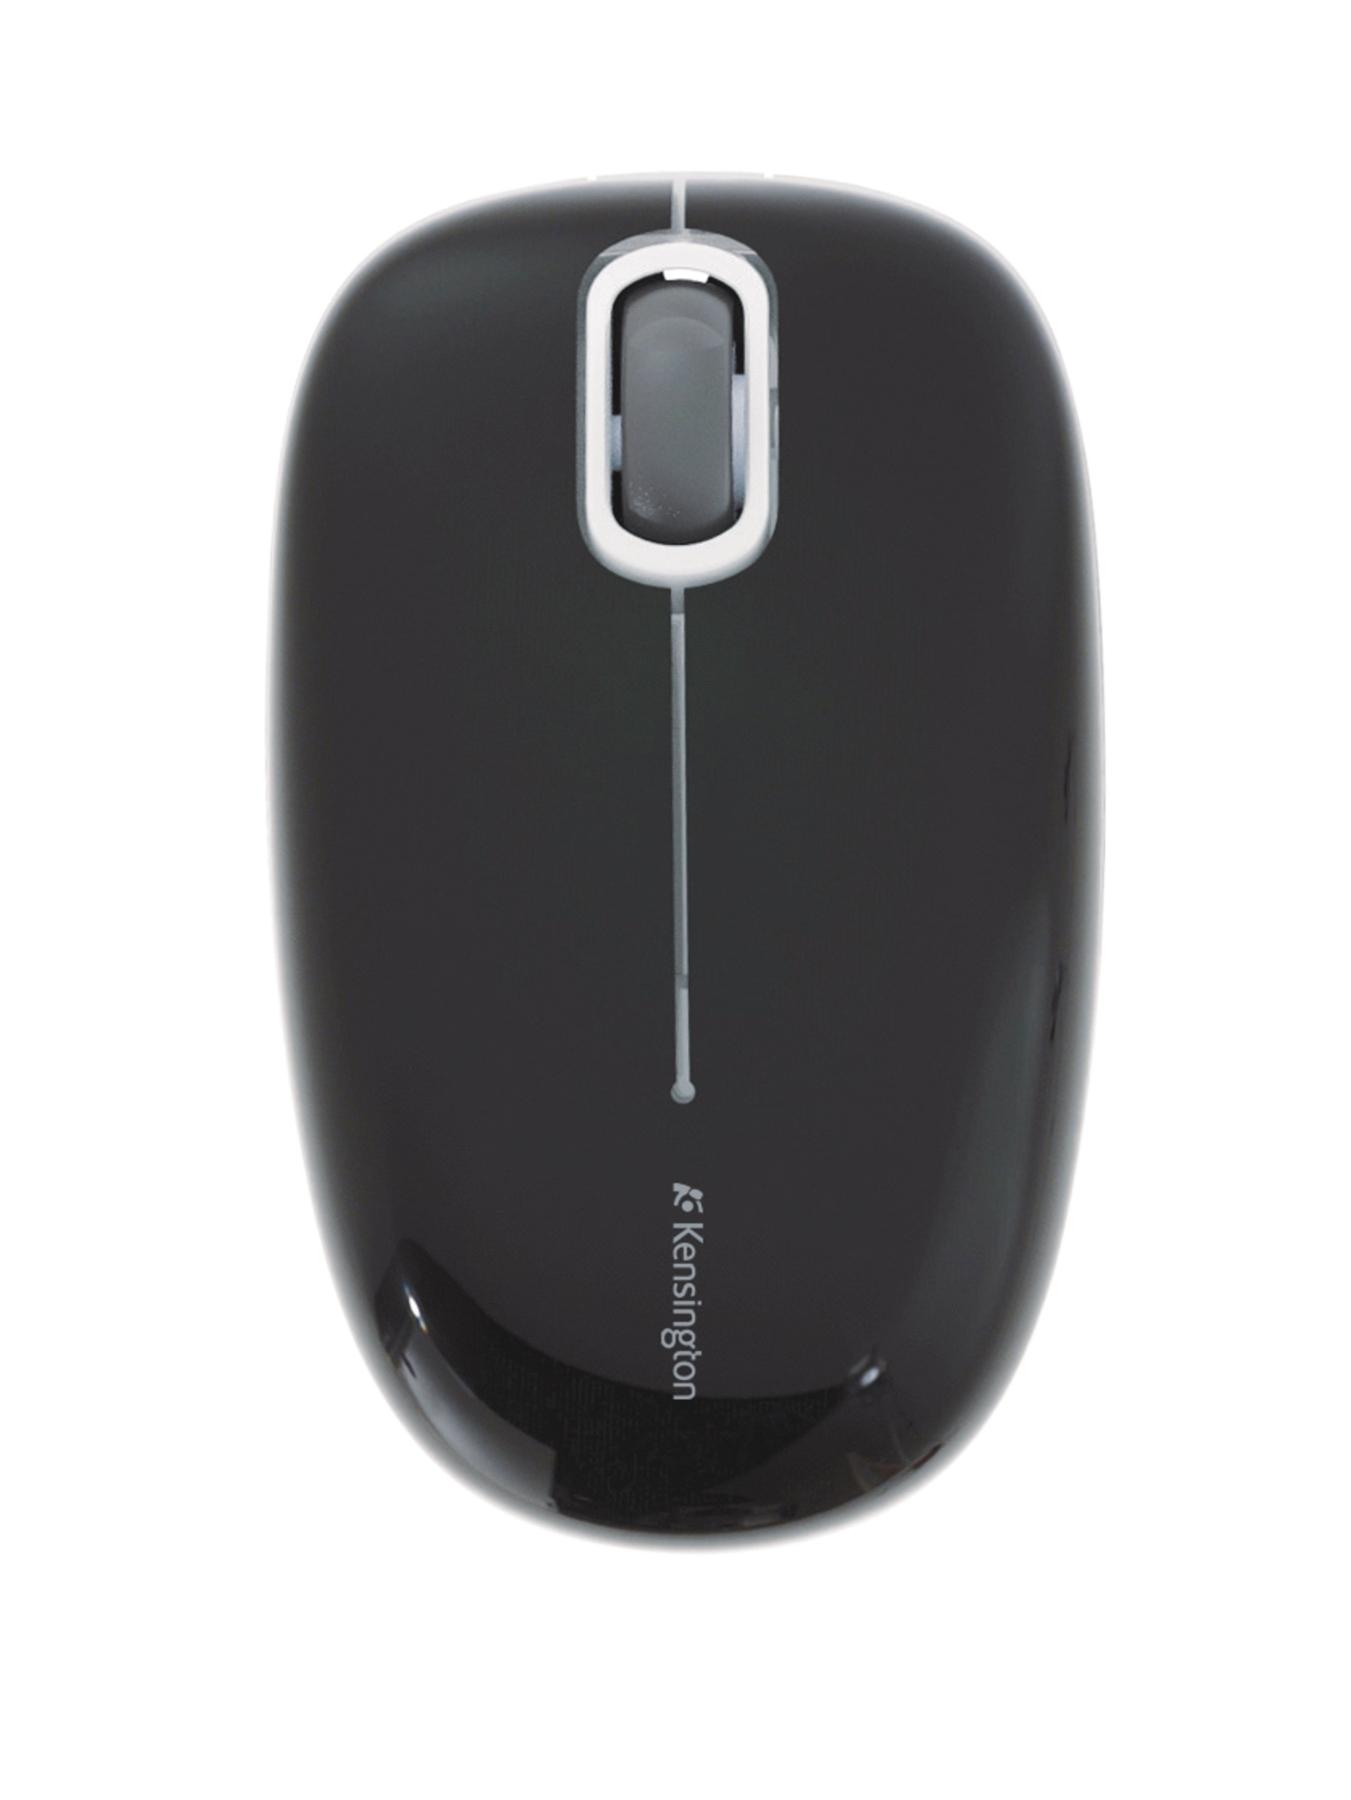 PocketMouse Wireless Mobile Mouse